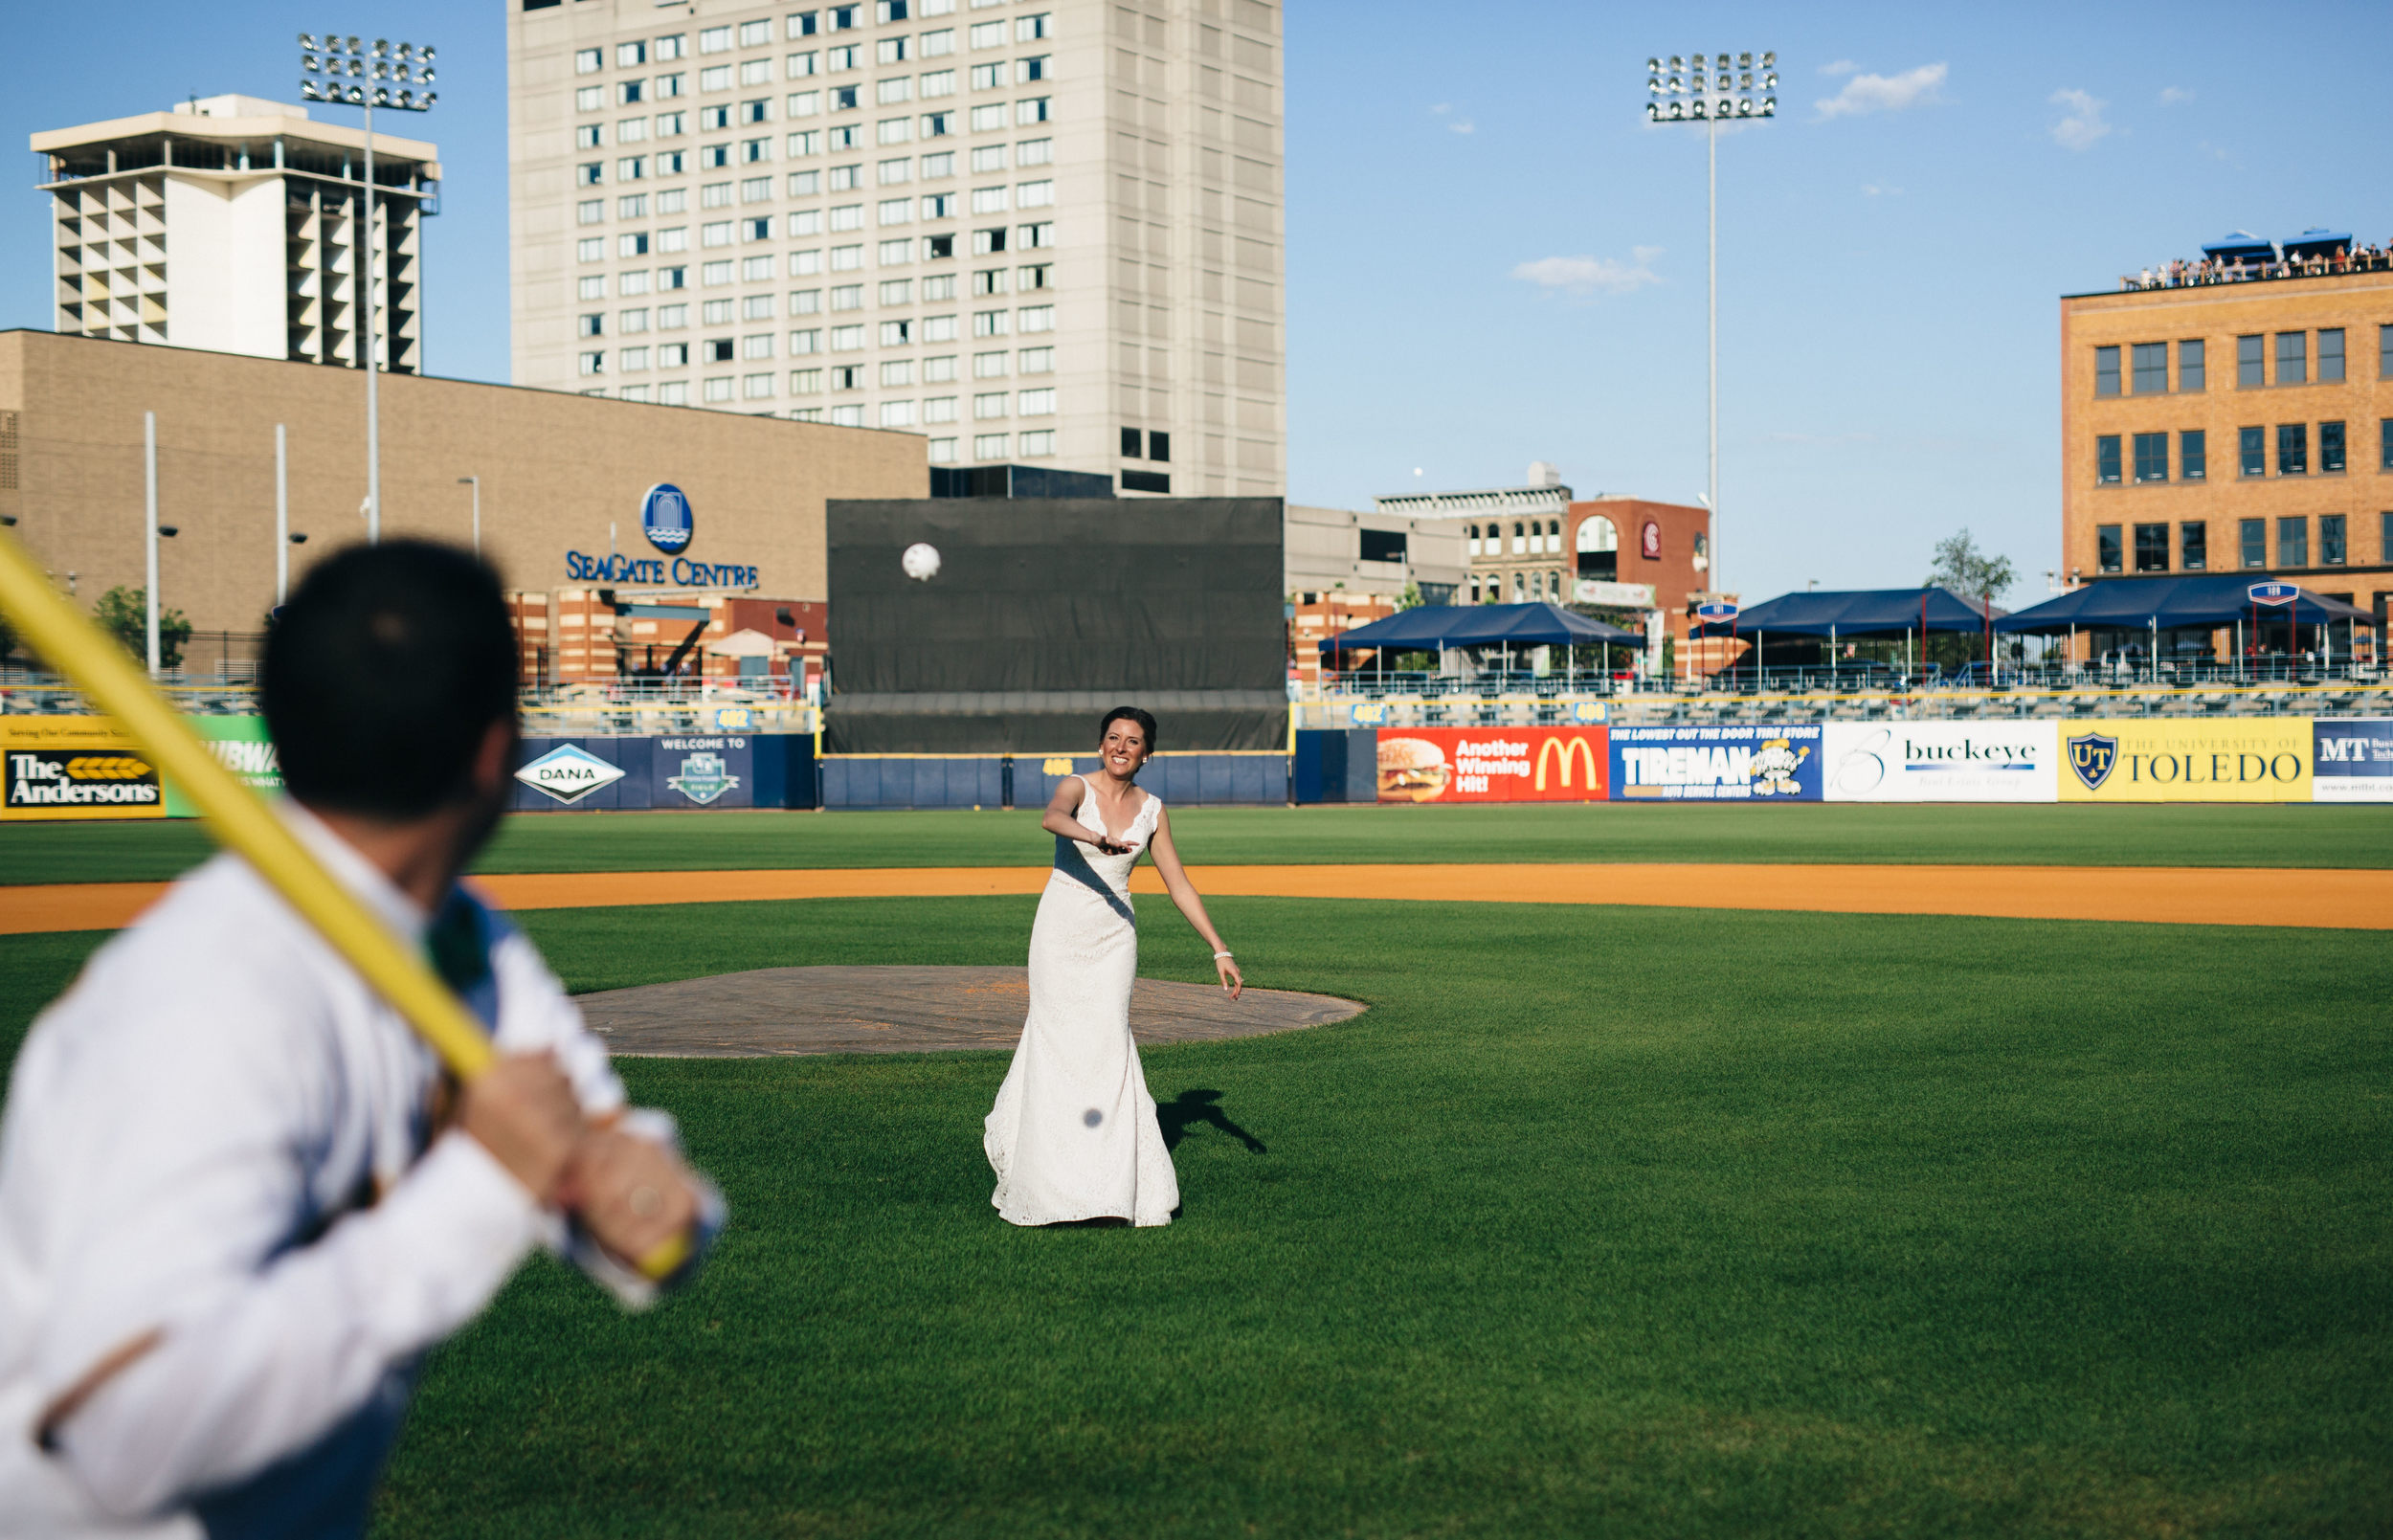 Bride pitches to groom at Fifth Third Field during Hensville Wedding.